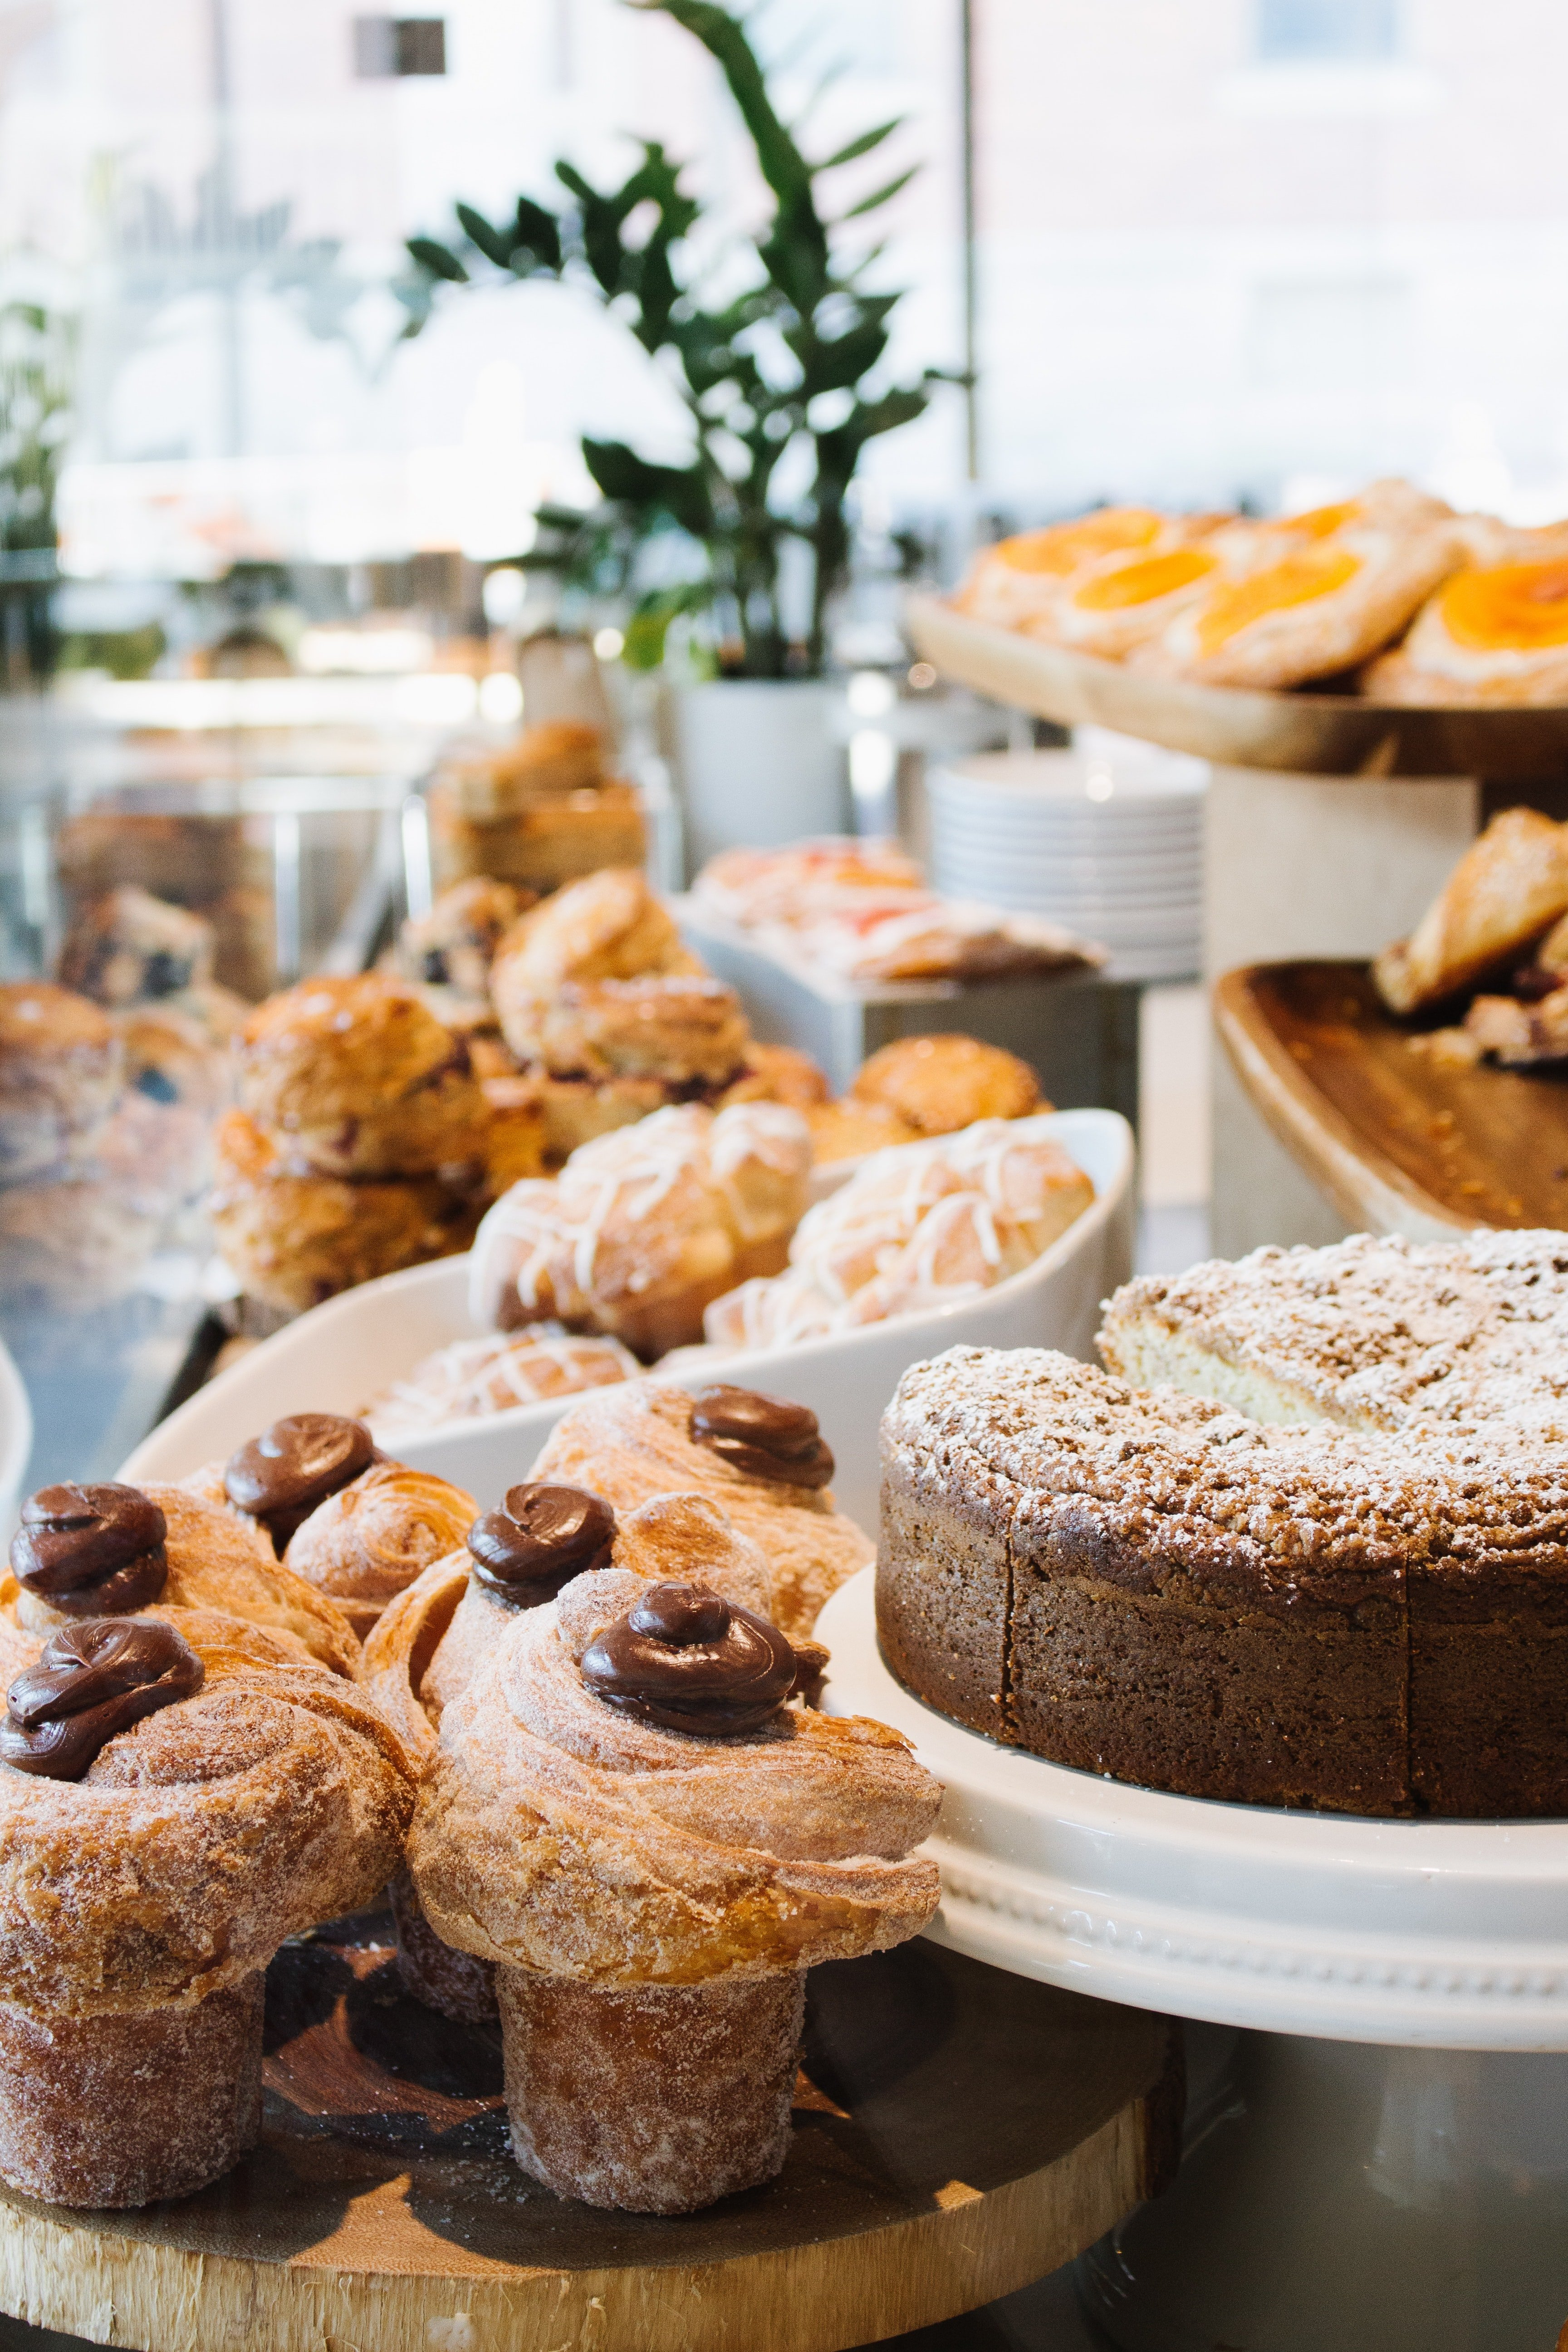 Edith started her pastry buisness | Photo: Unsplash